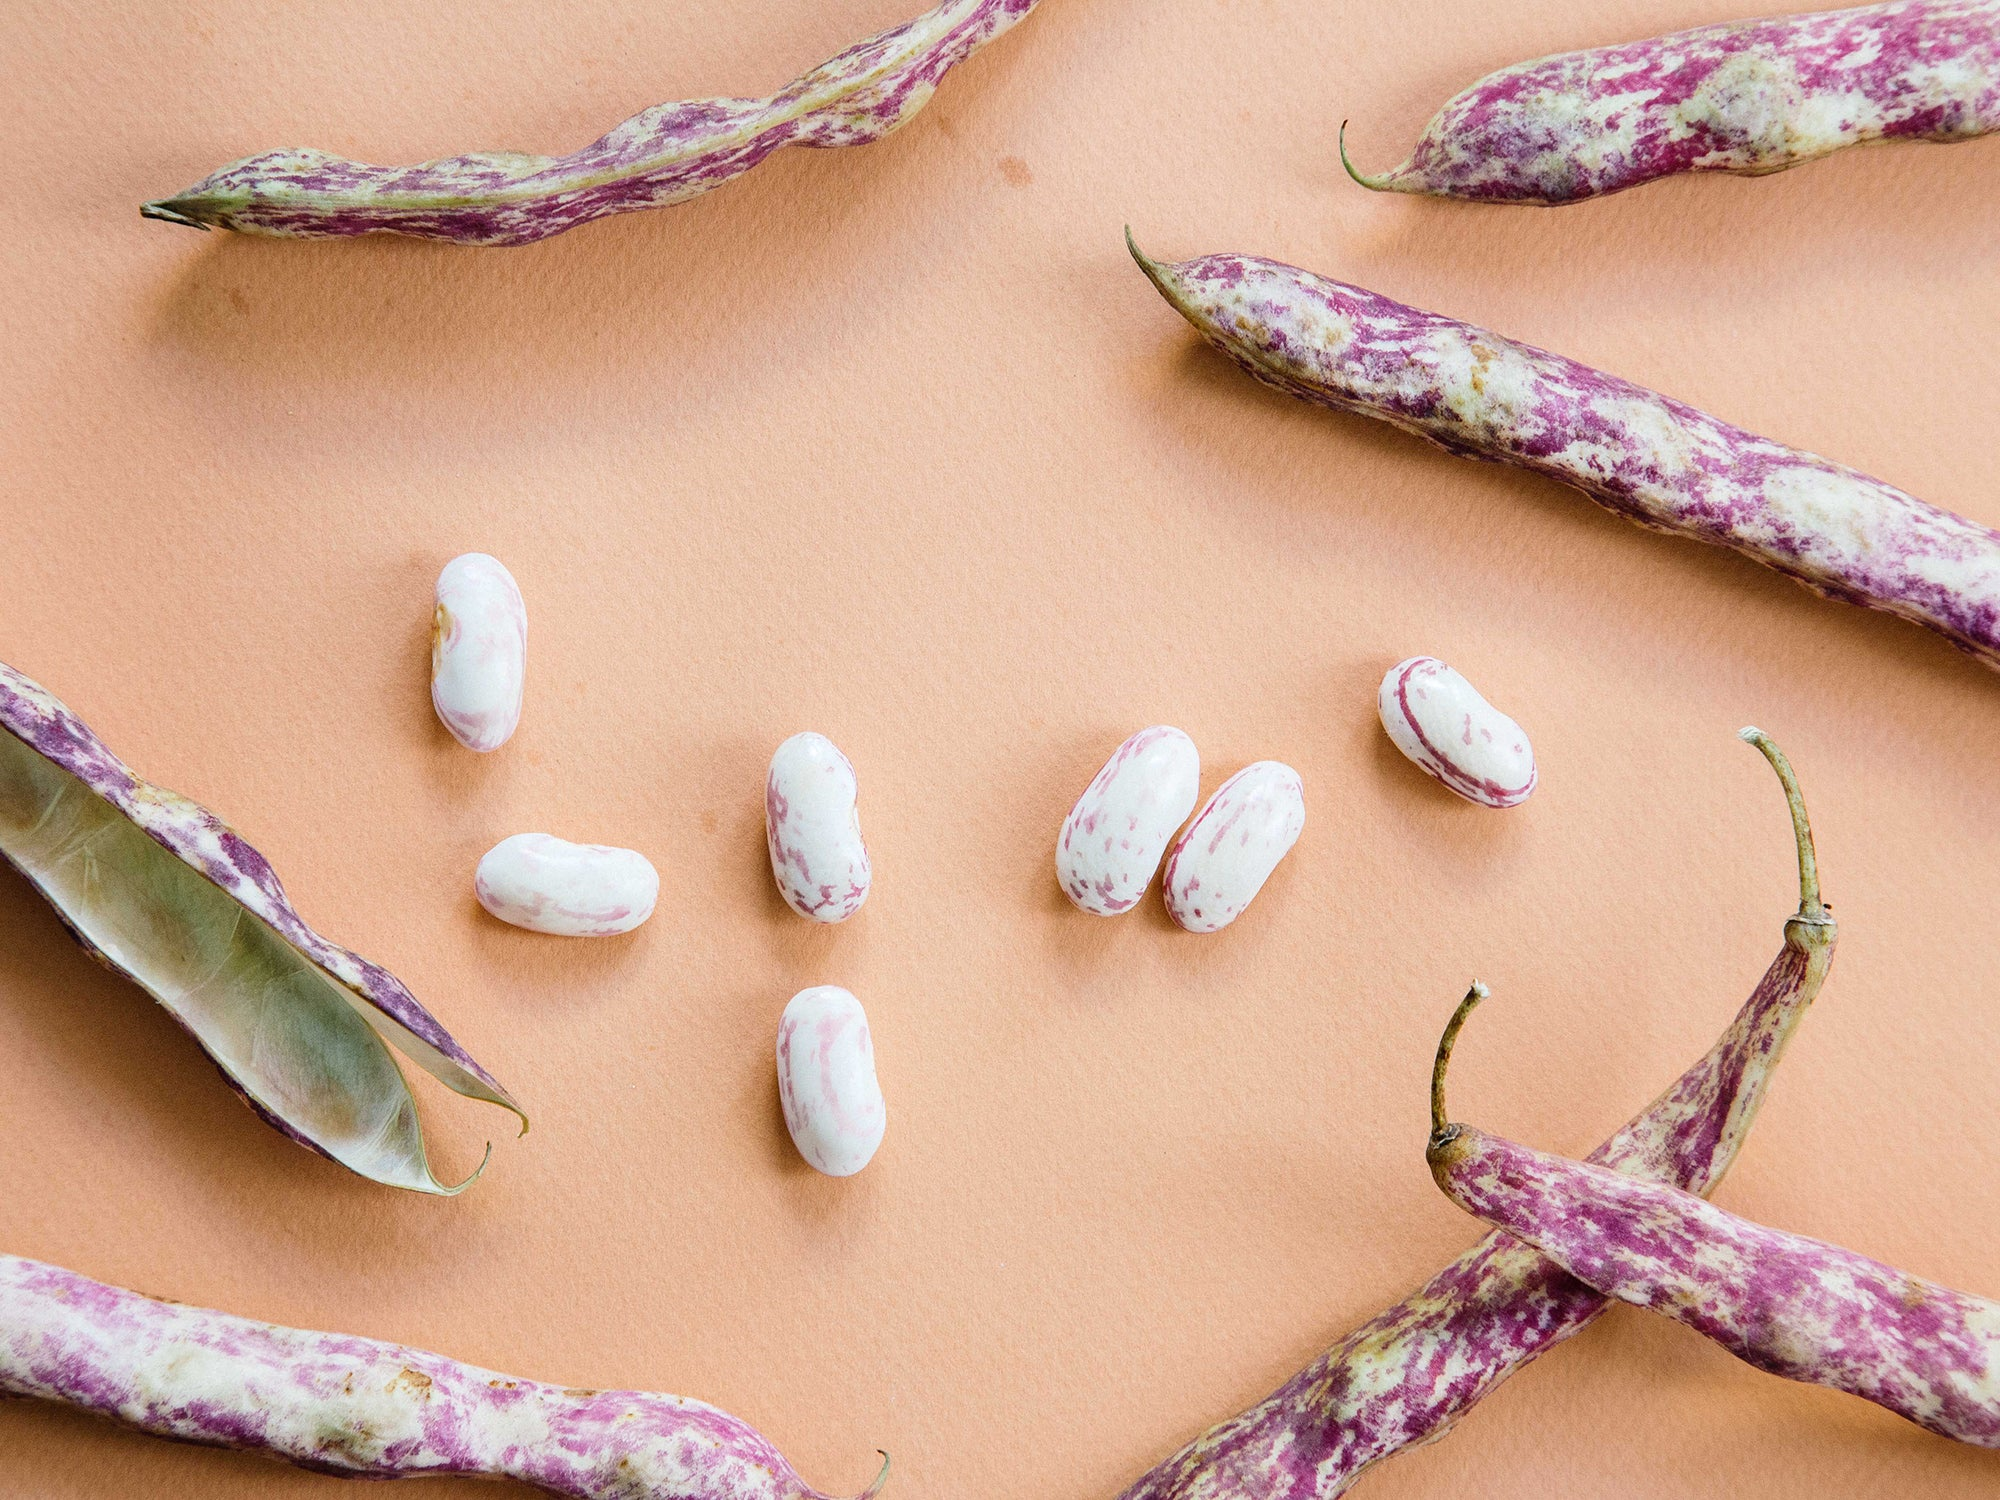 Fresh Shelling Beans are Summer's Most Underrated Produce